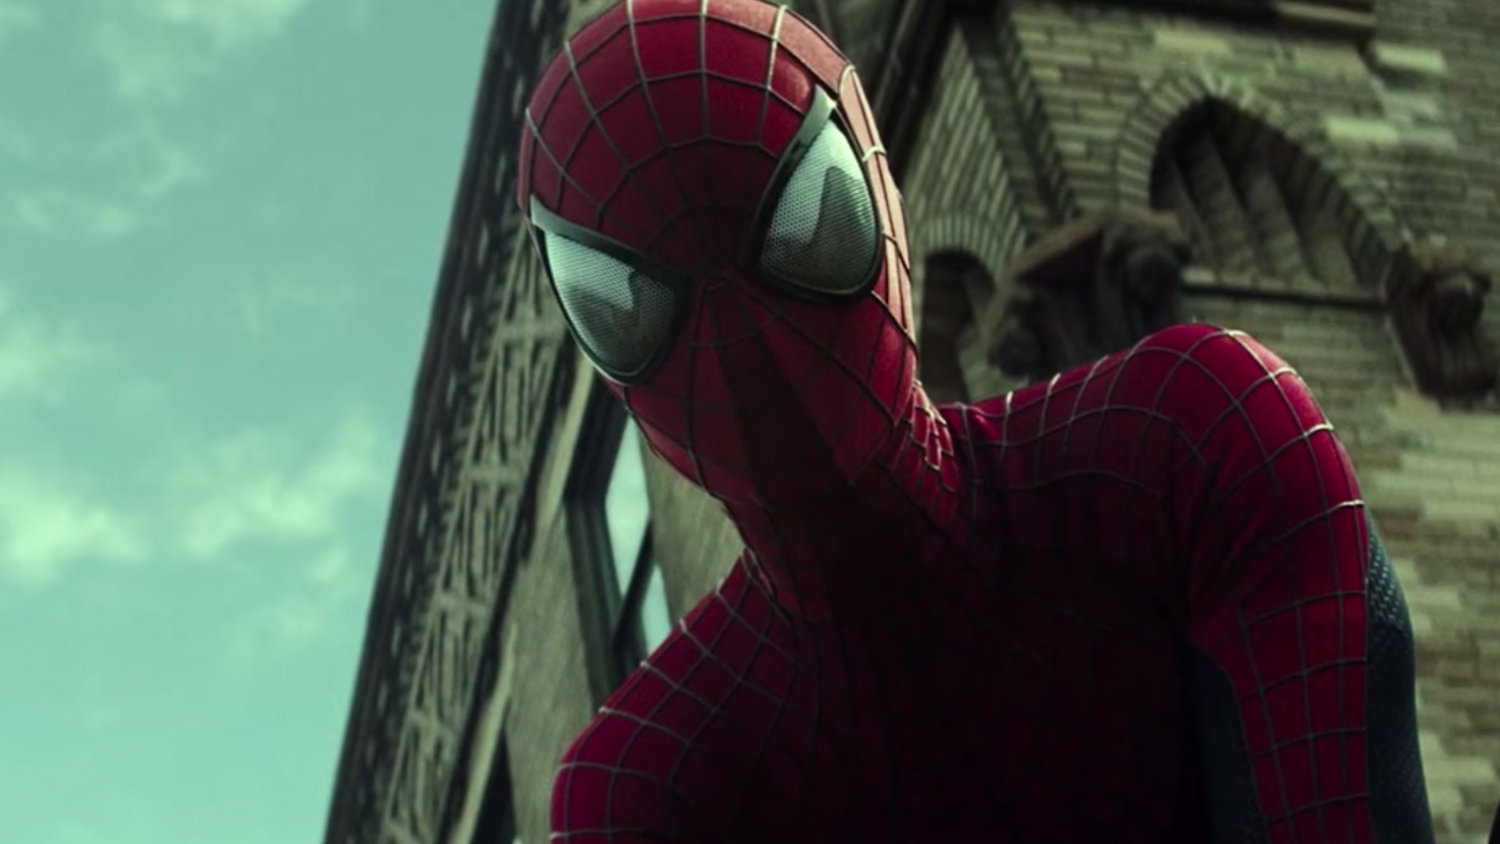 Here's What Spider-Man Looks Like as a Stalker